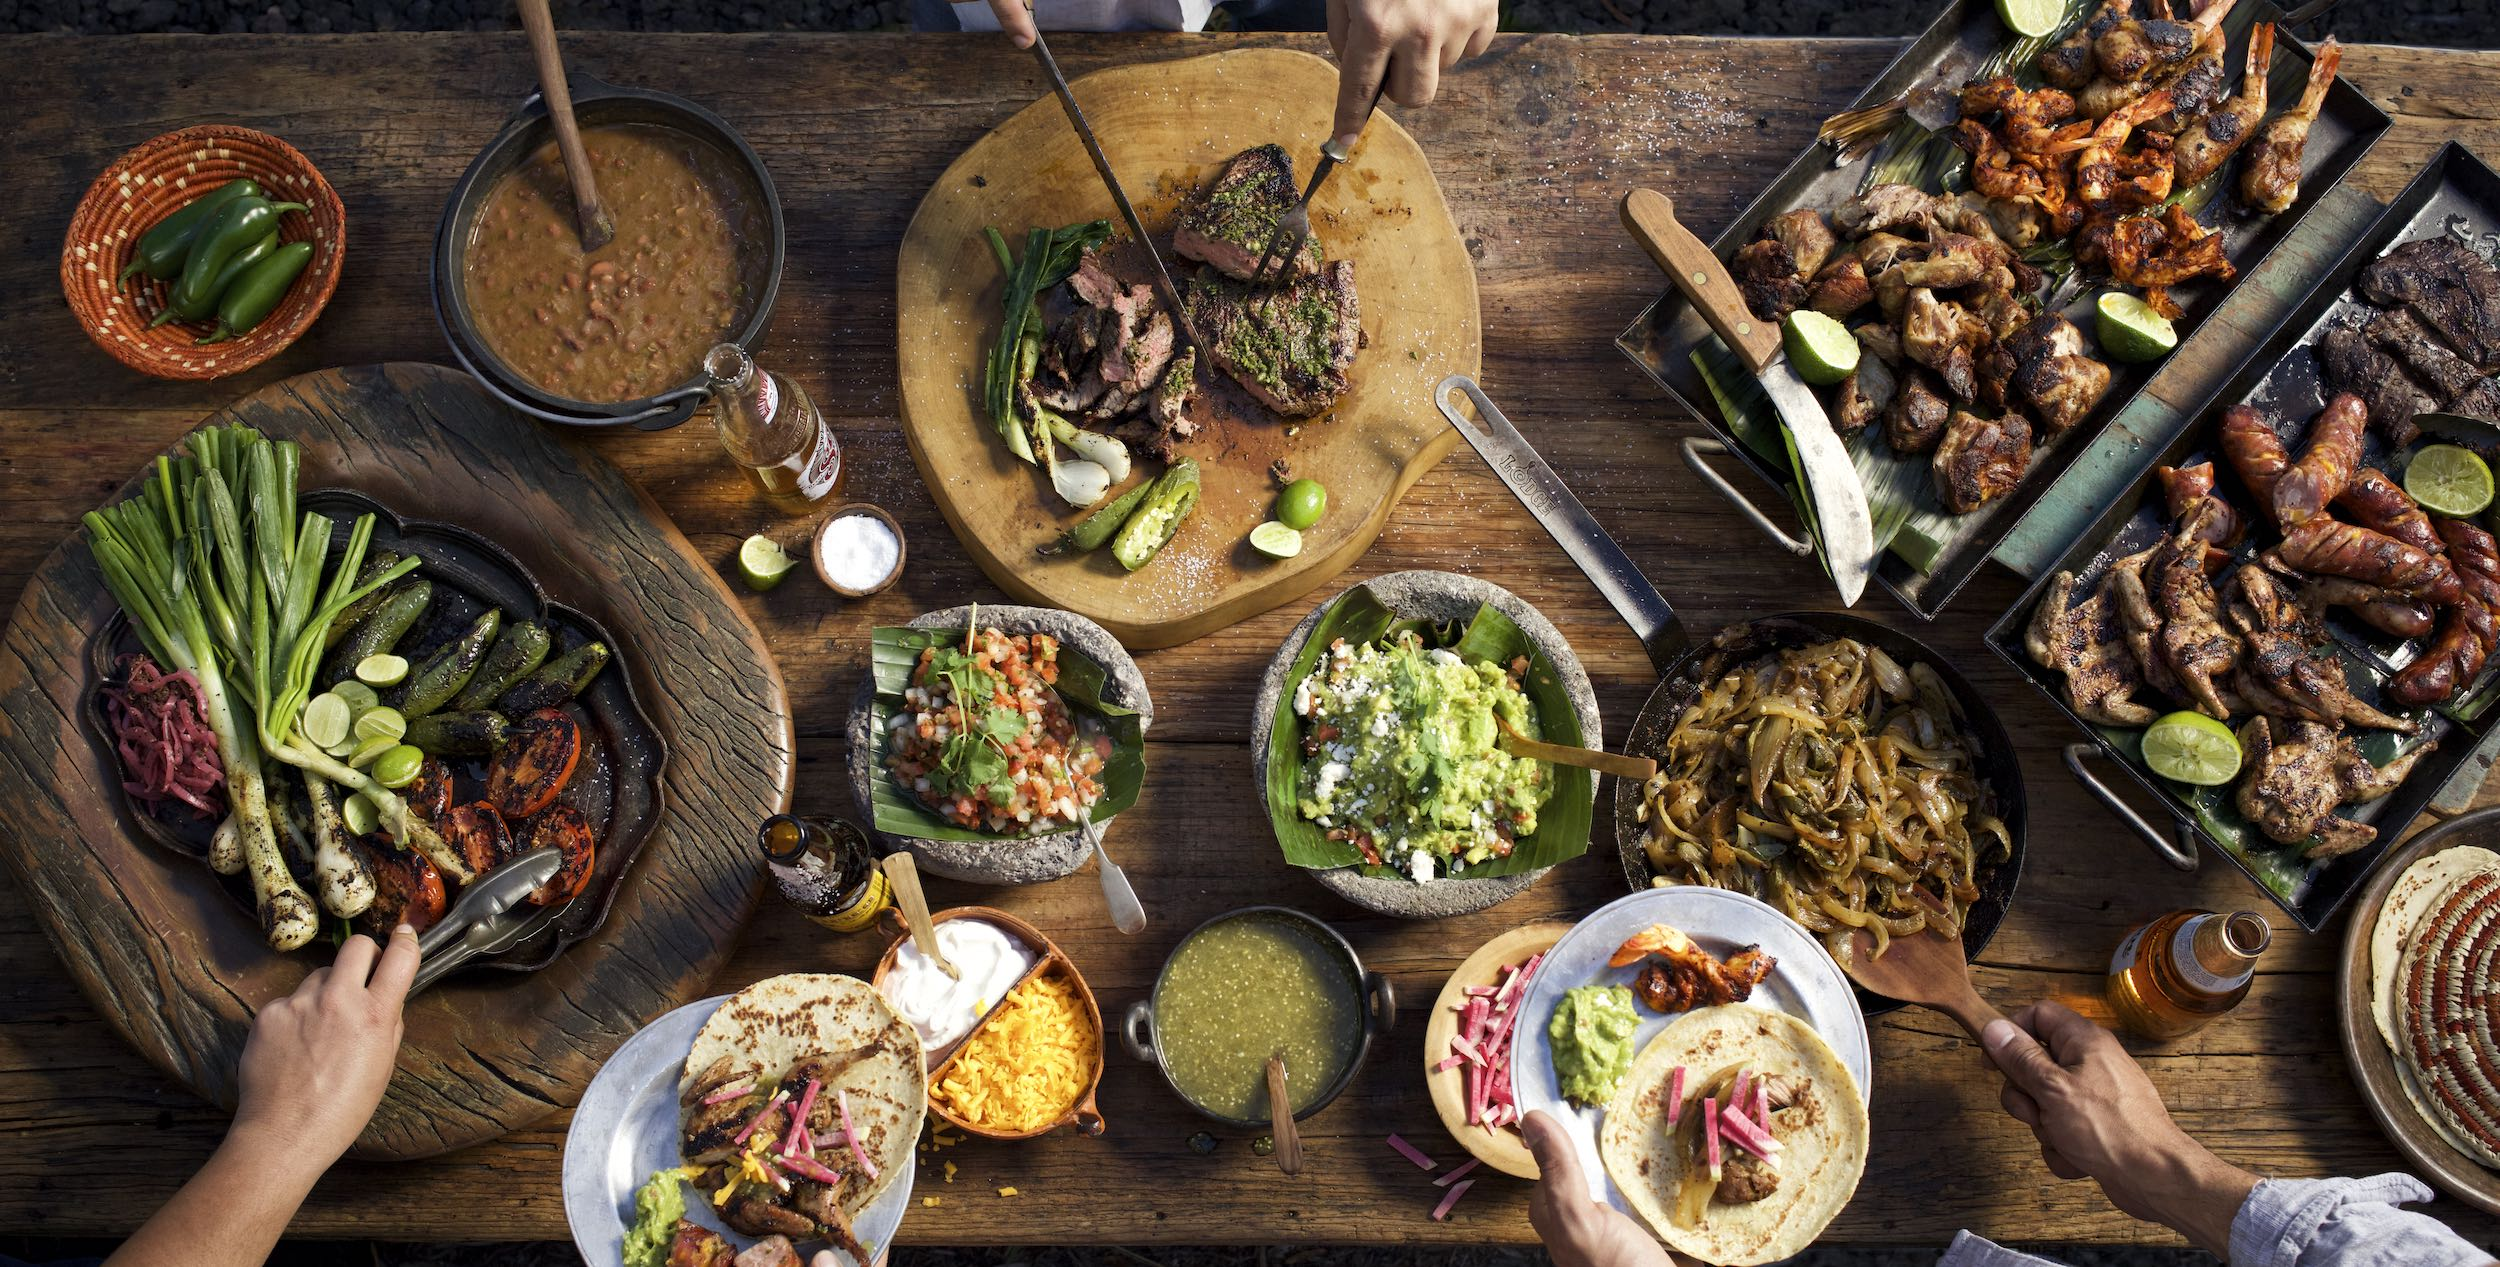 Jody Horton Photography - Taco spread on a wooden table with hands reaching and plating food.